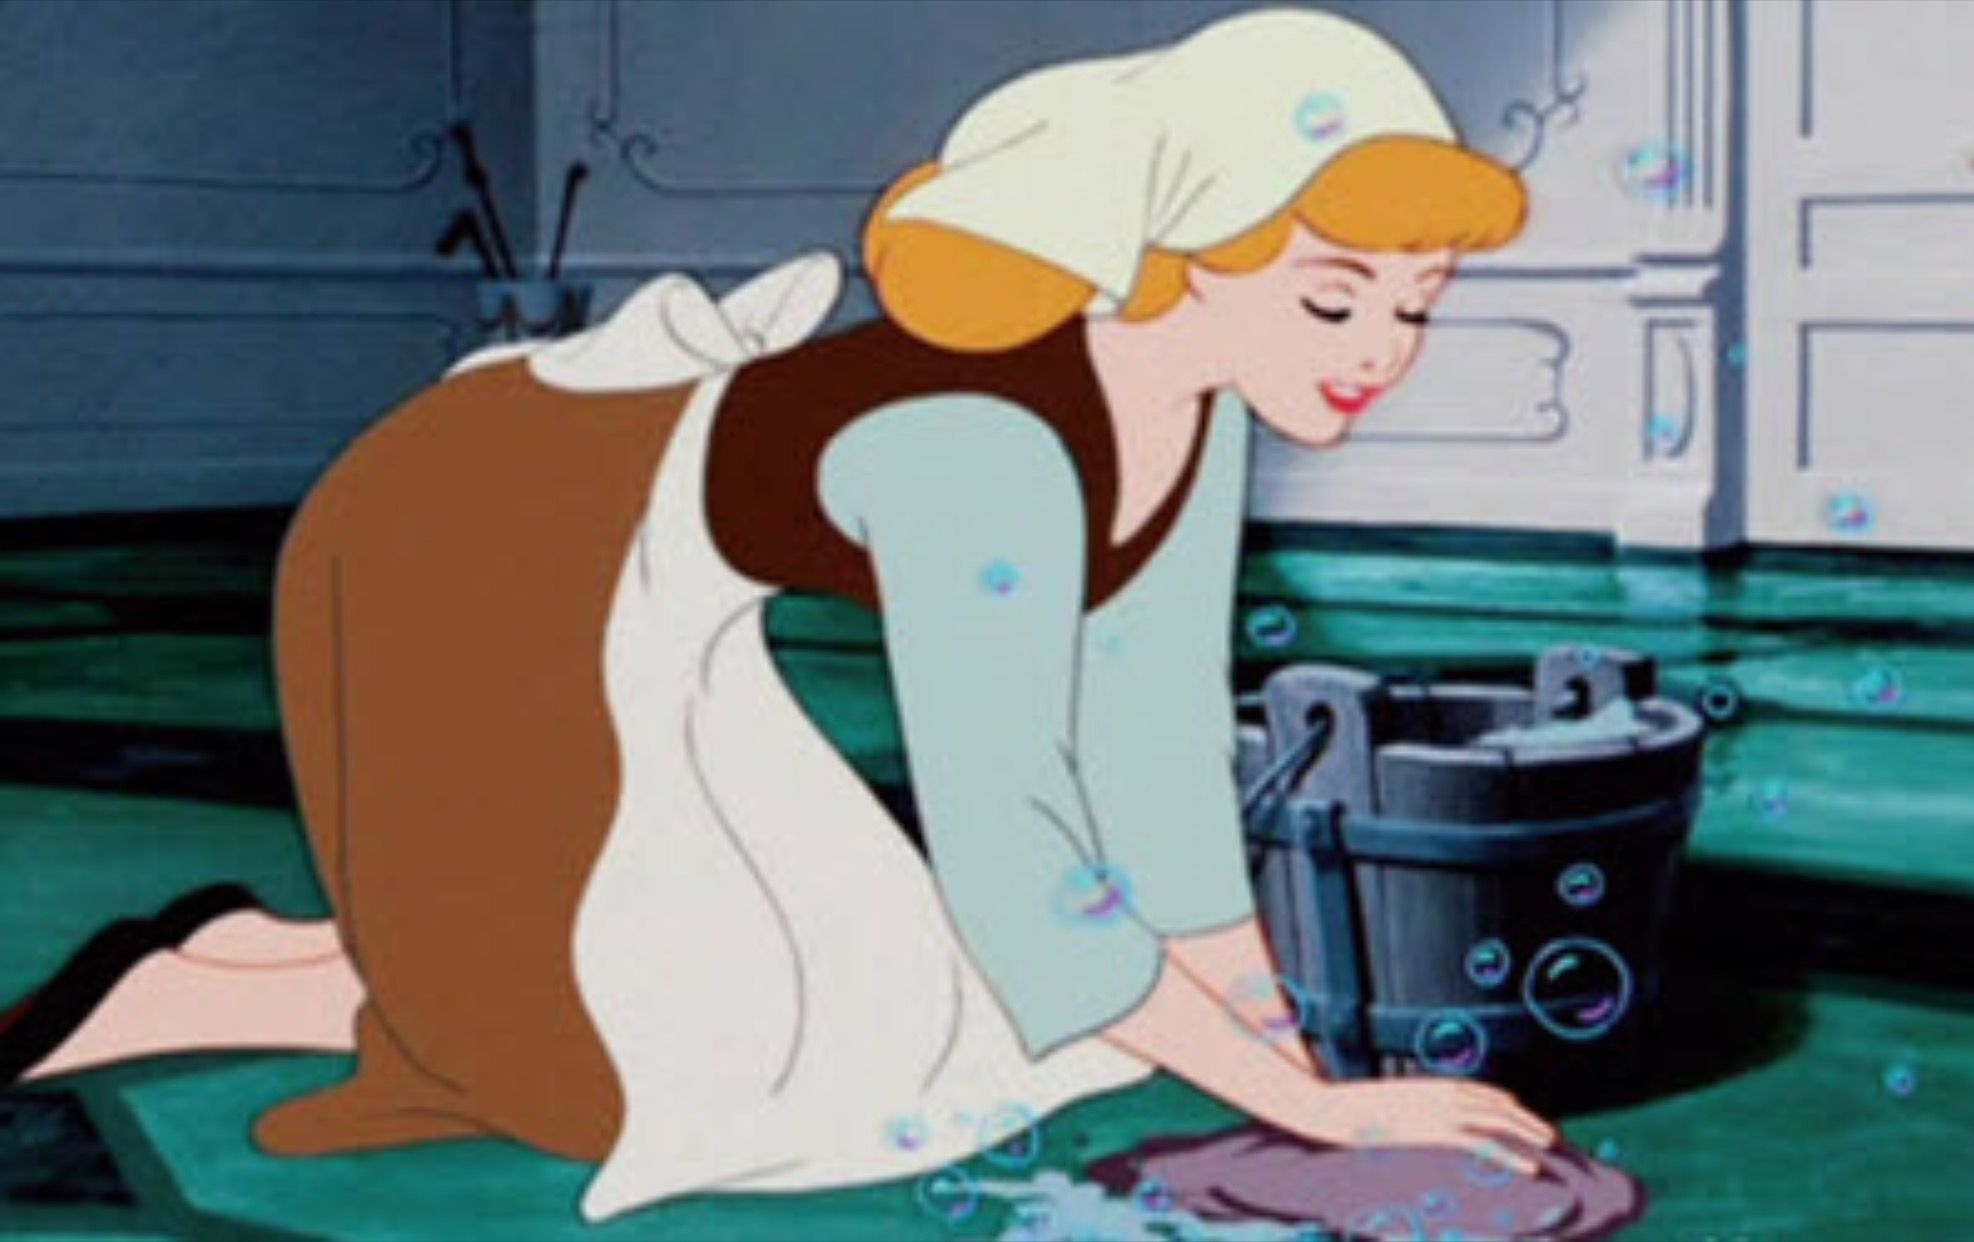 Cinderella looked good scrubbing floors. A perfectly good and healthy beauty role model.